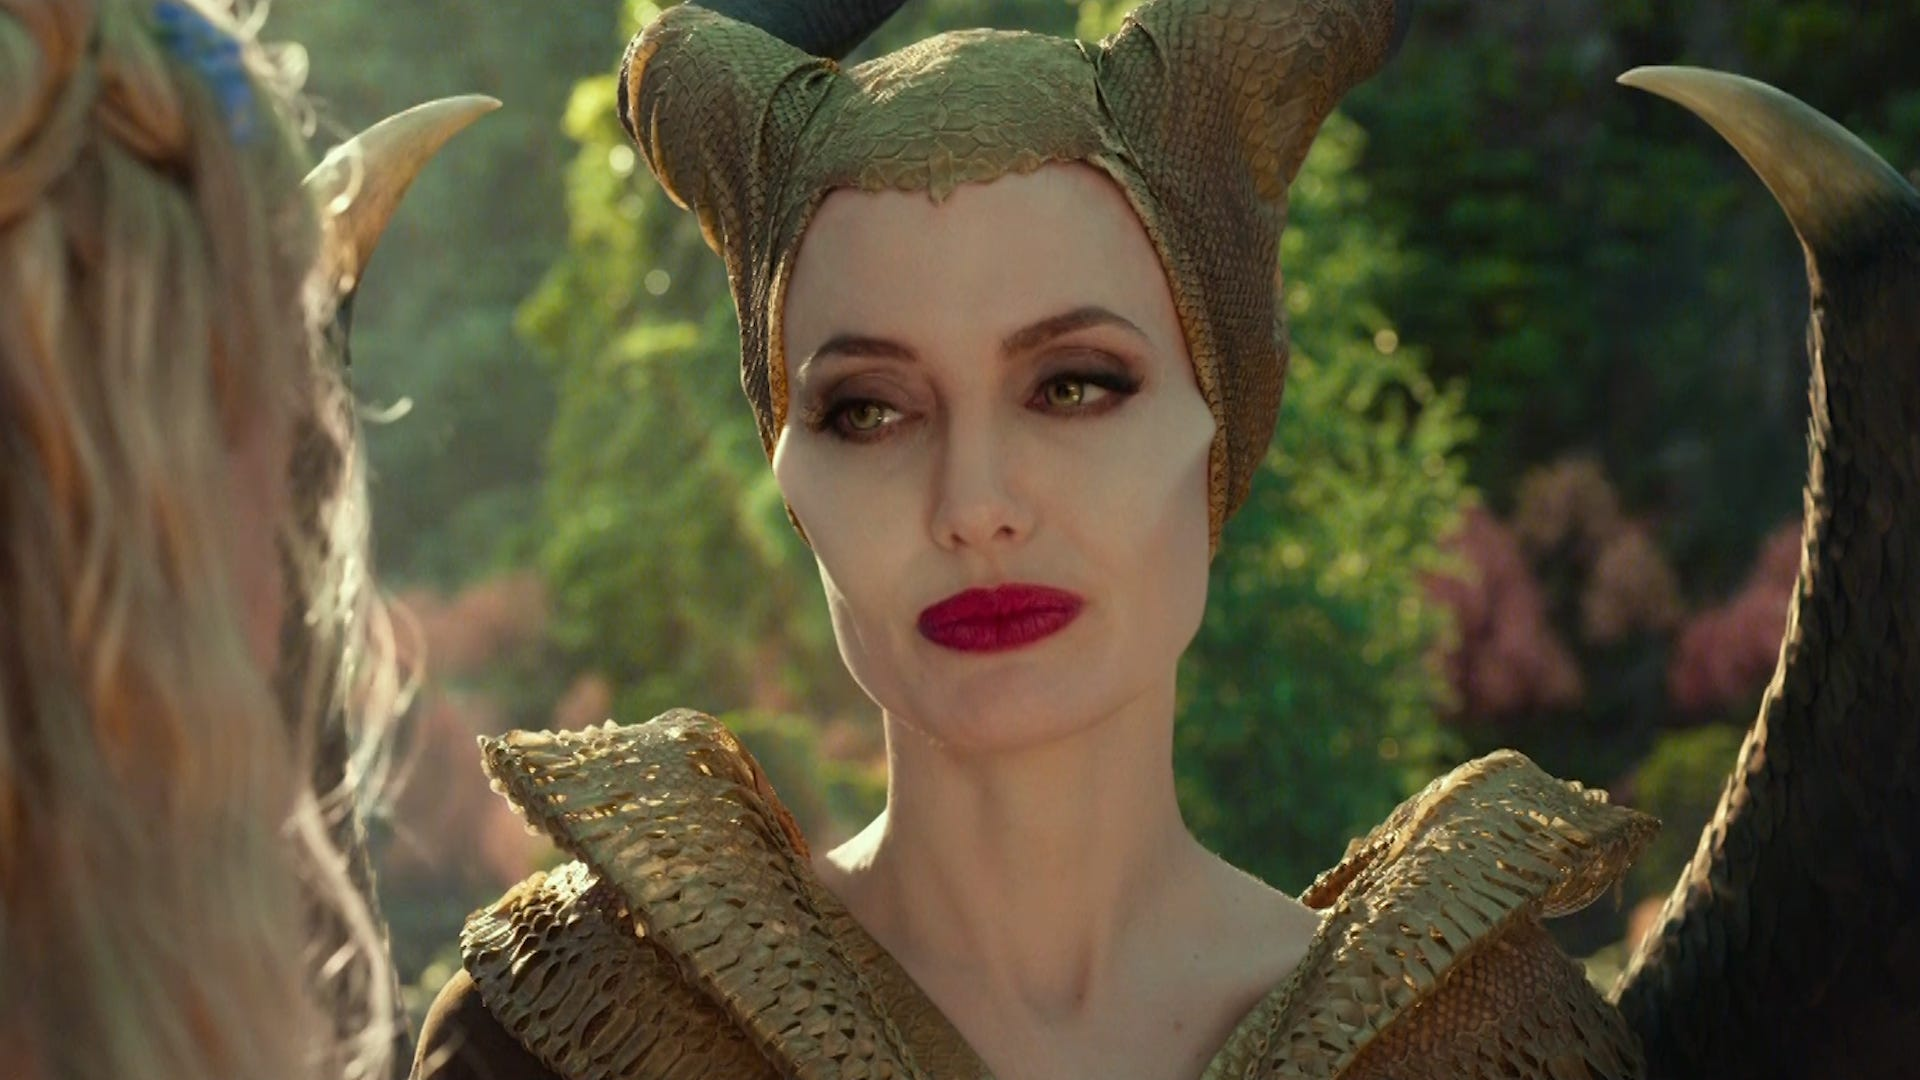 Maleficent Mistress Of Evil Watch The First Official Trailer